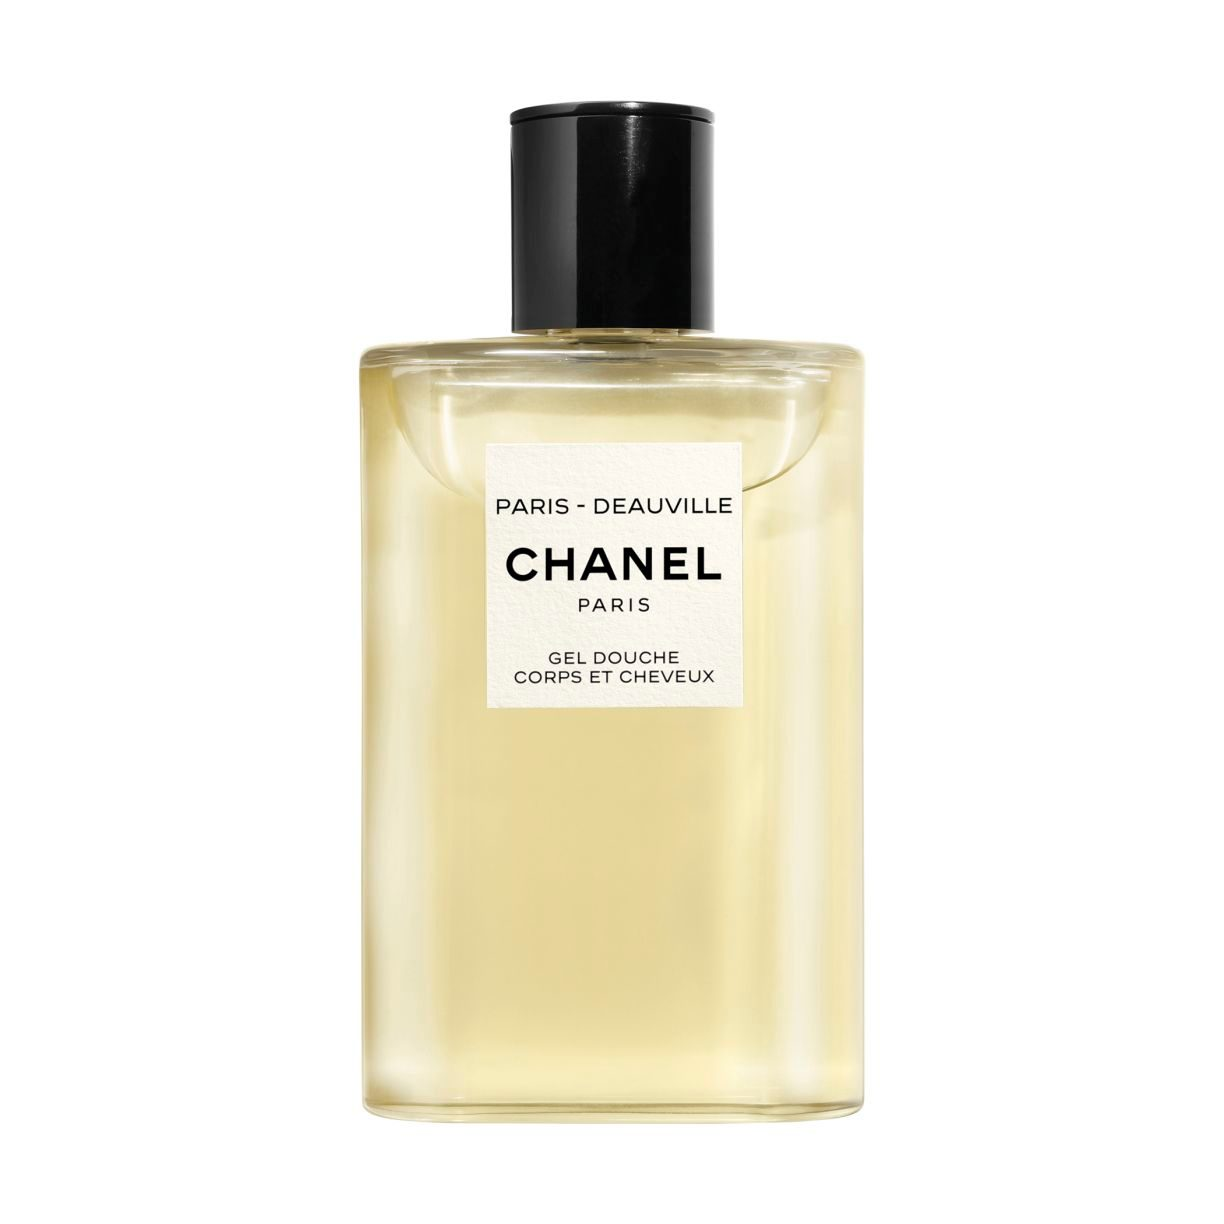 LES EAUX DE CHANEL PARIS - DEAUVILLE - HAIR AND BODY SHOWER GEL